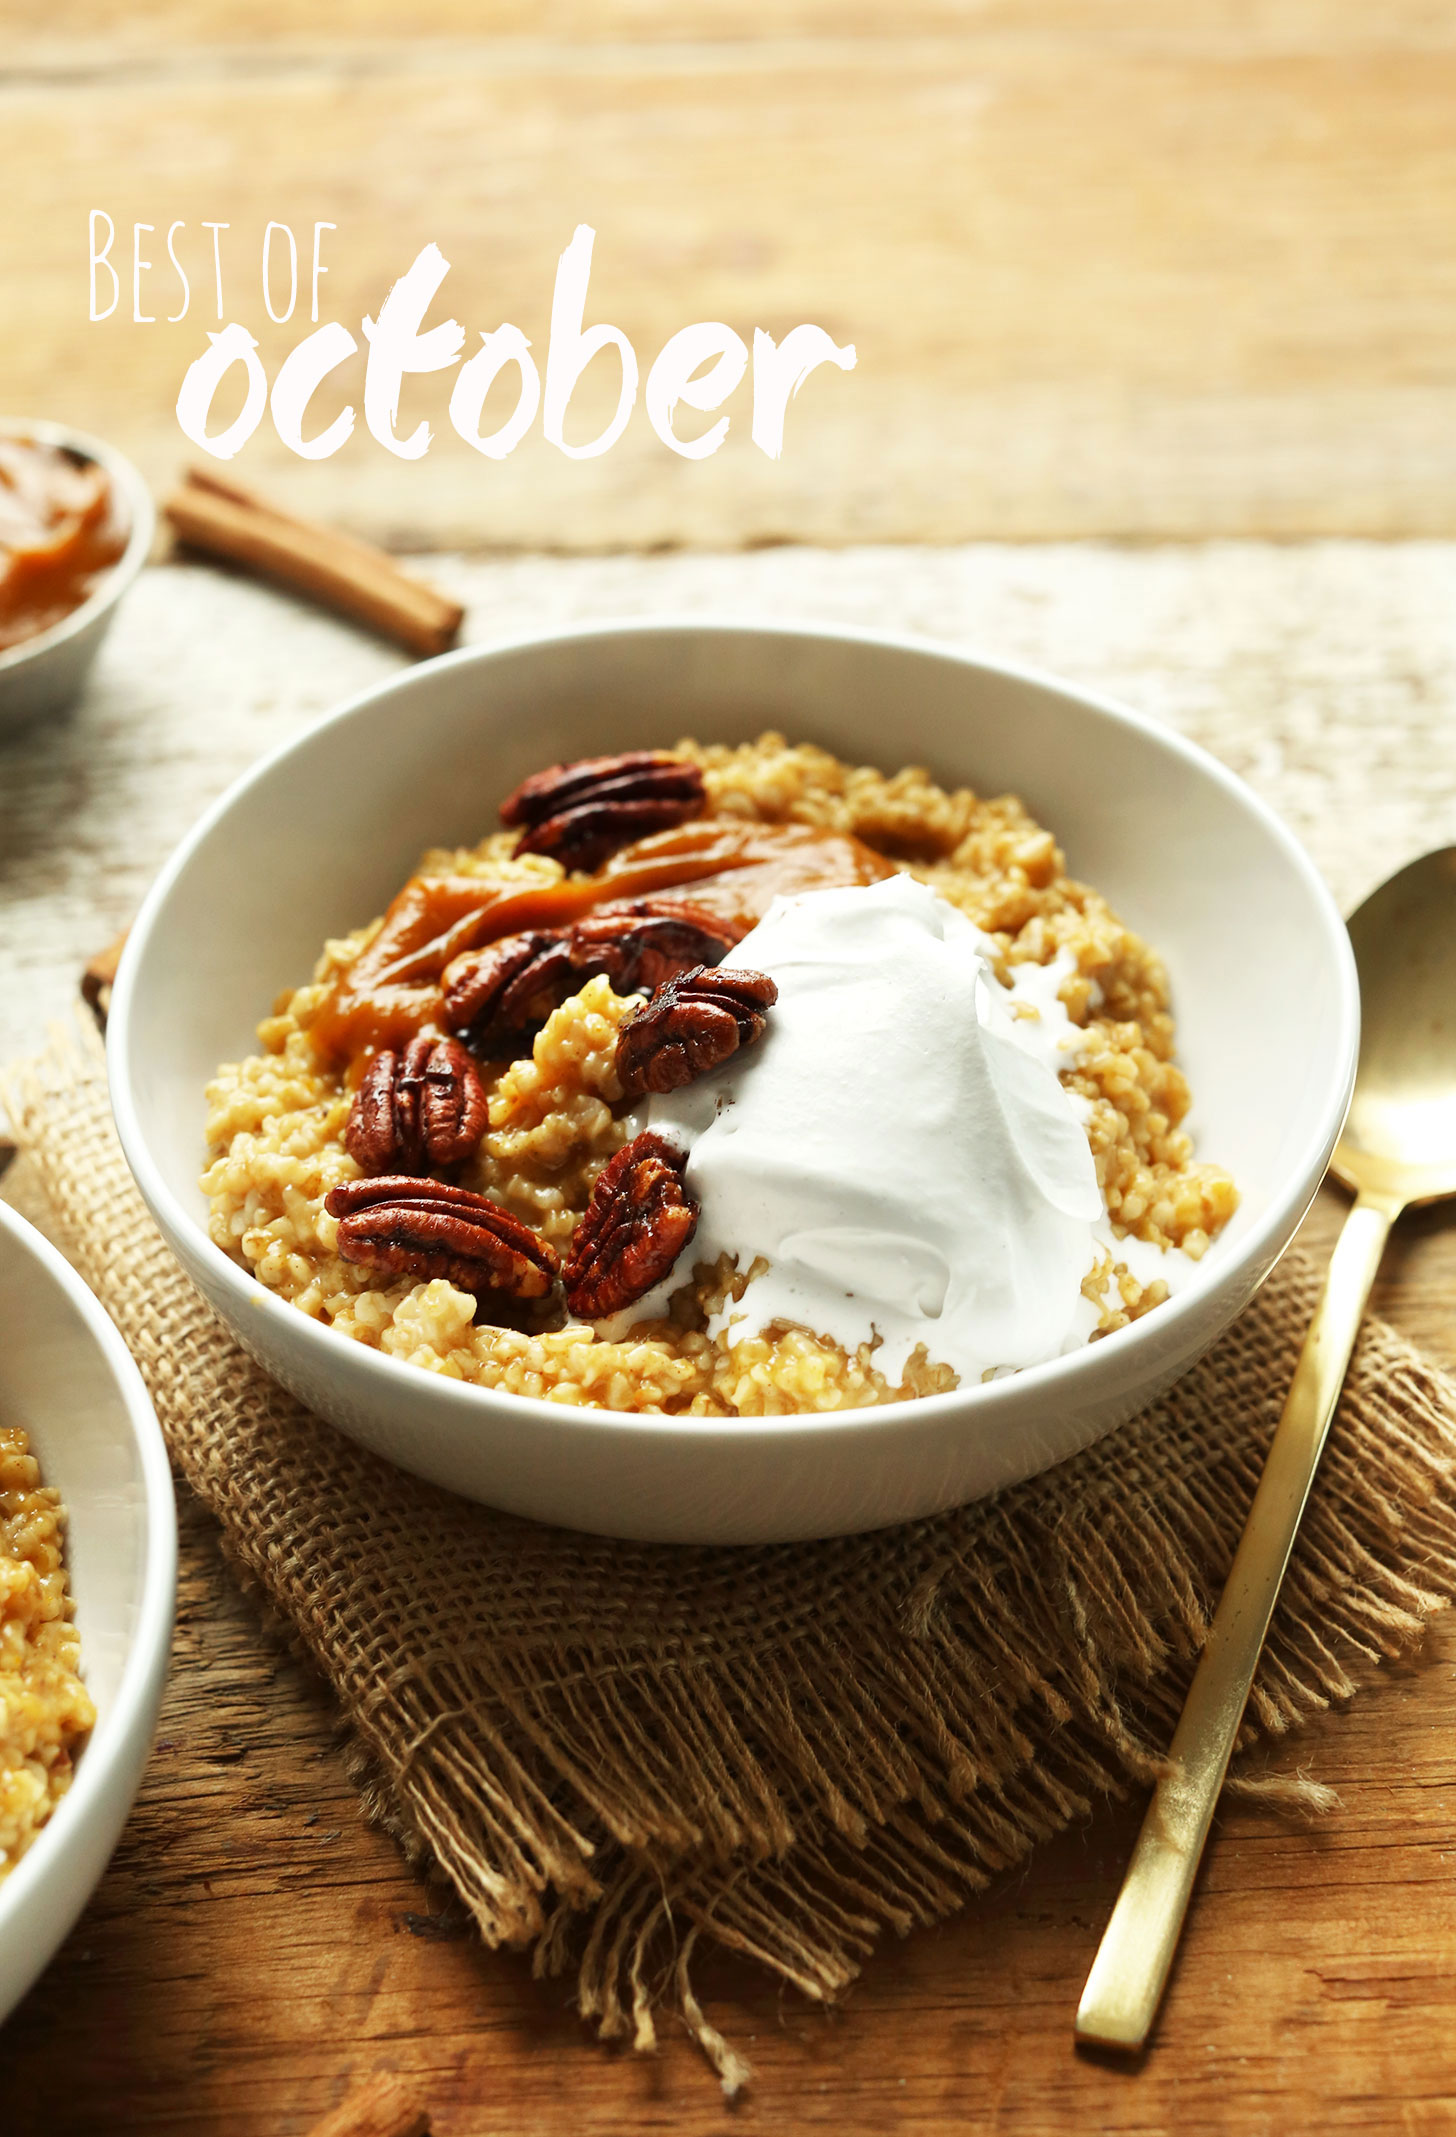 A bowl of Pumpkin Pie Oats to represent our Best of October post